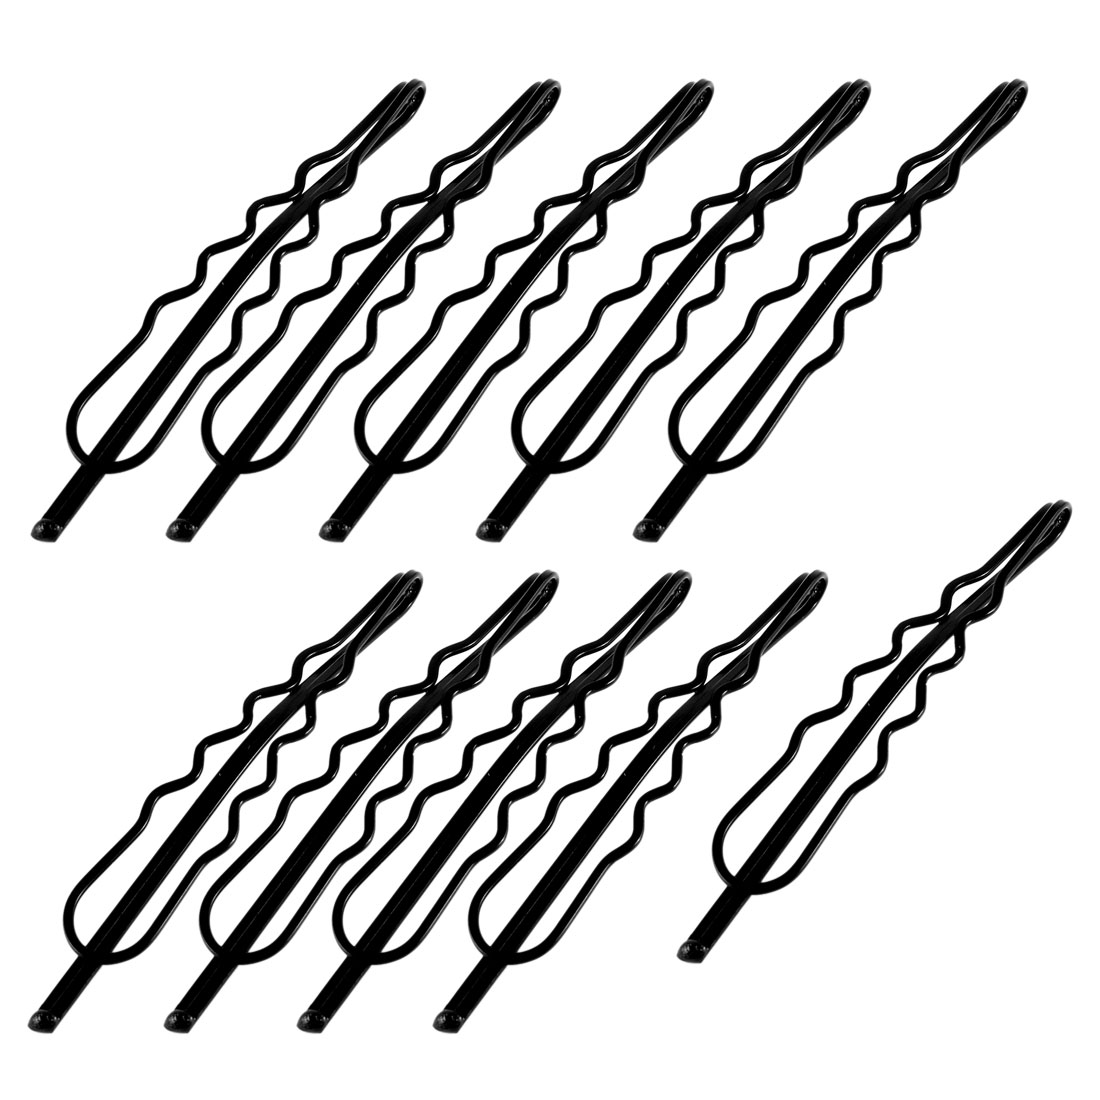 10 Pcs Black Hairdressing Hairclips Clips Double Prong Bob Pin for Ladies